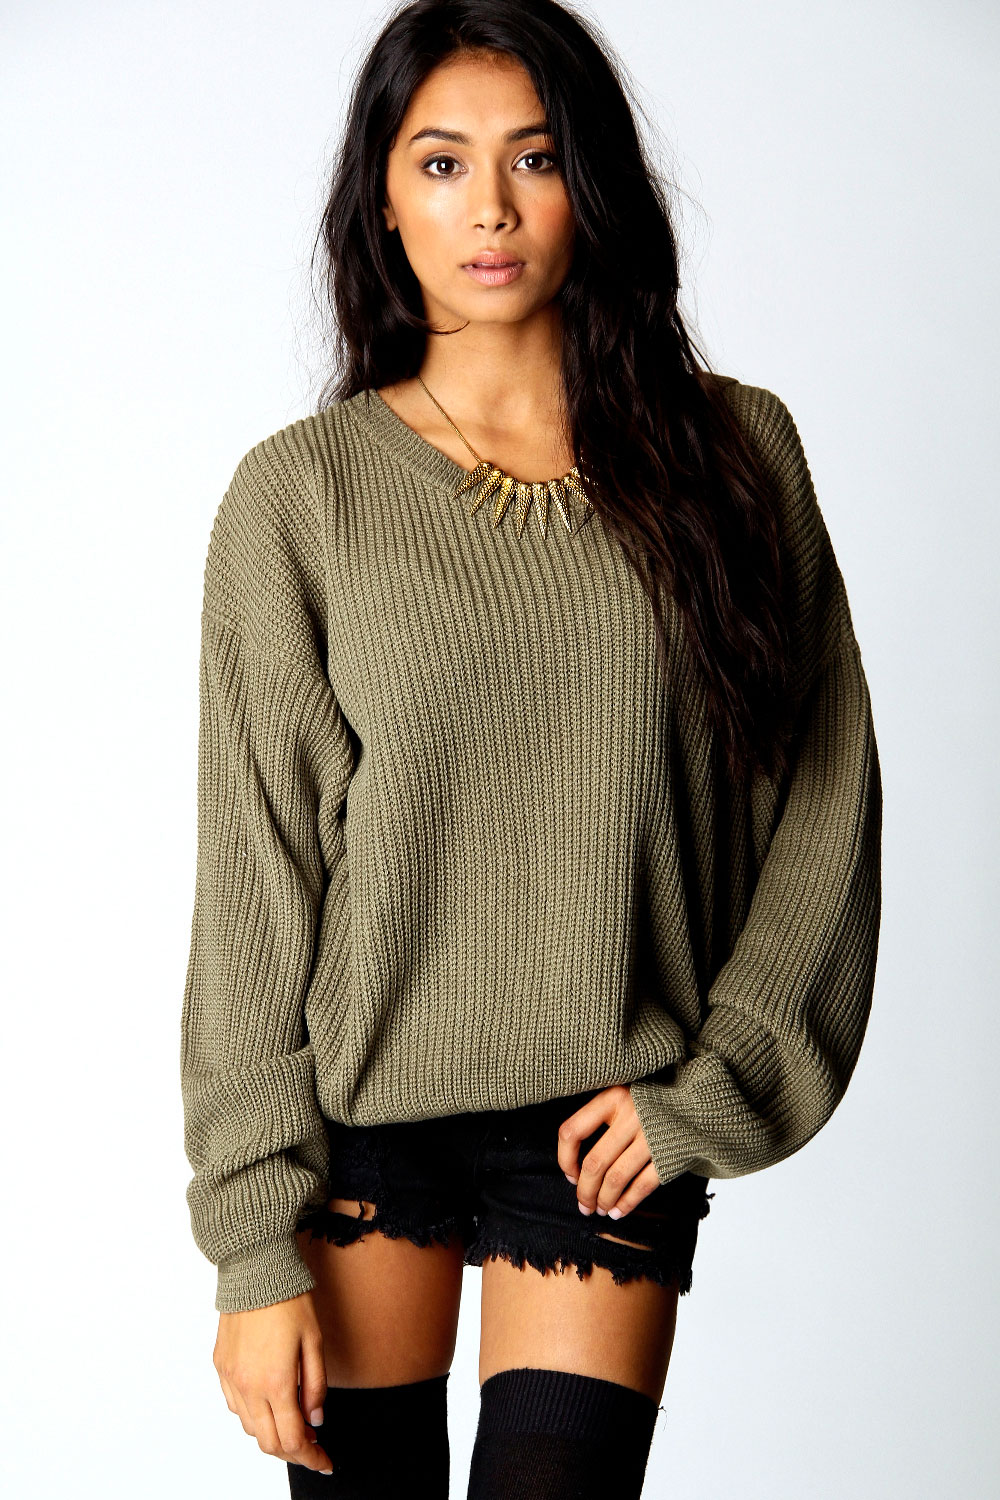 Shop bestselling Womens Oversized Jumpers: brands items Many styles & colours up to −60% on sale» Browse now at Stylight!